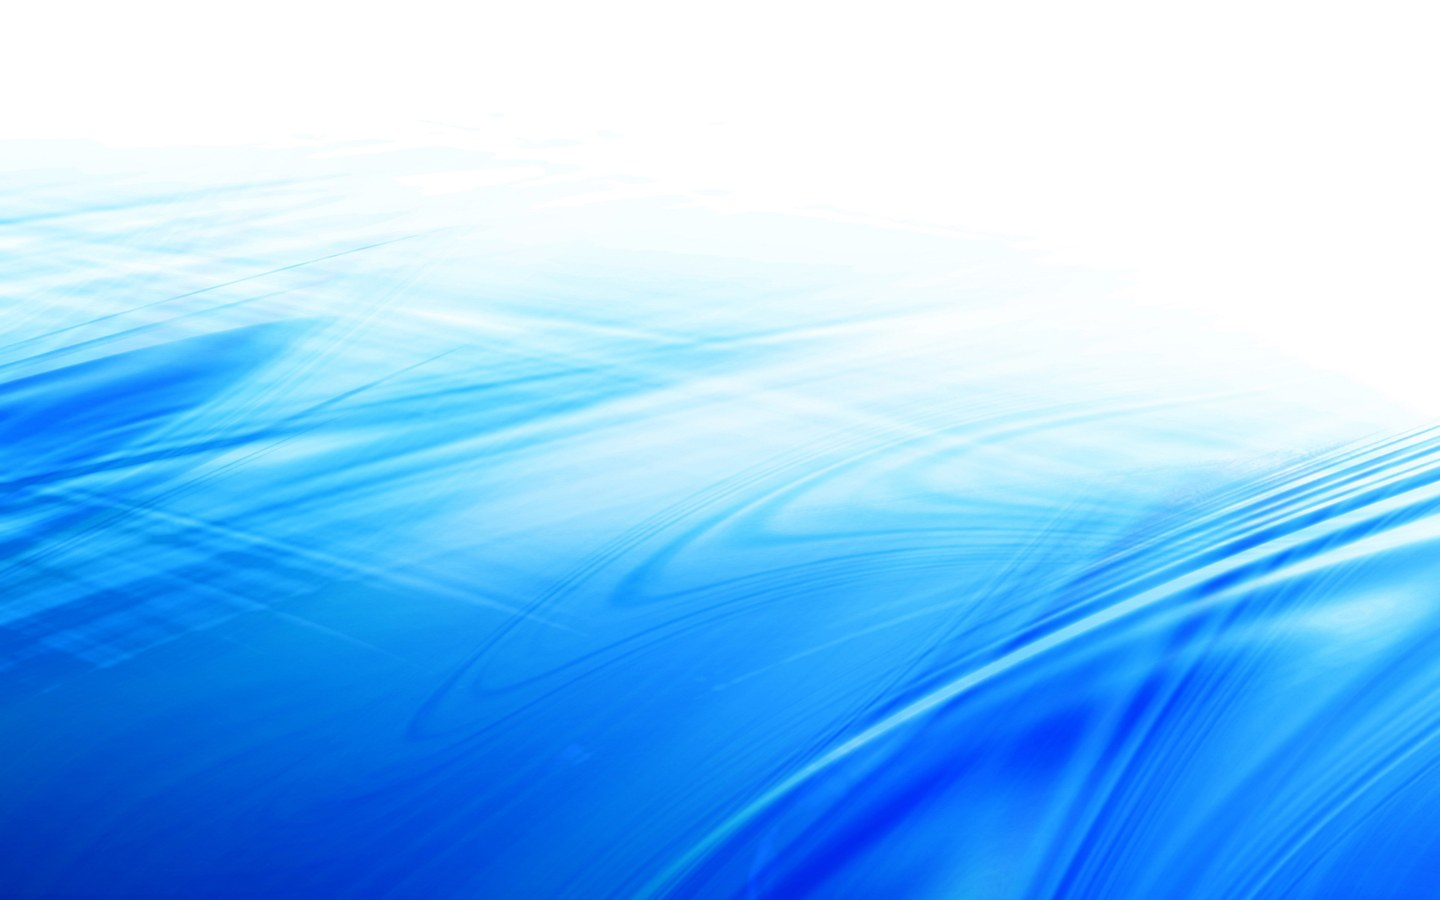 1440x900 blue abstraction - photo #16